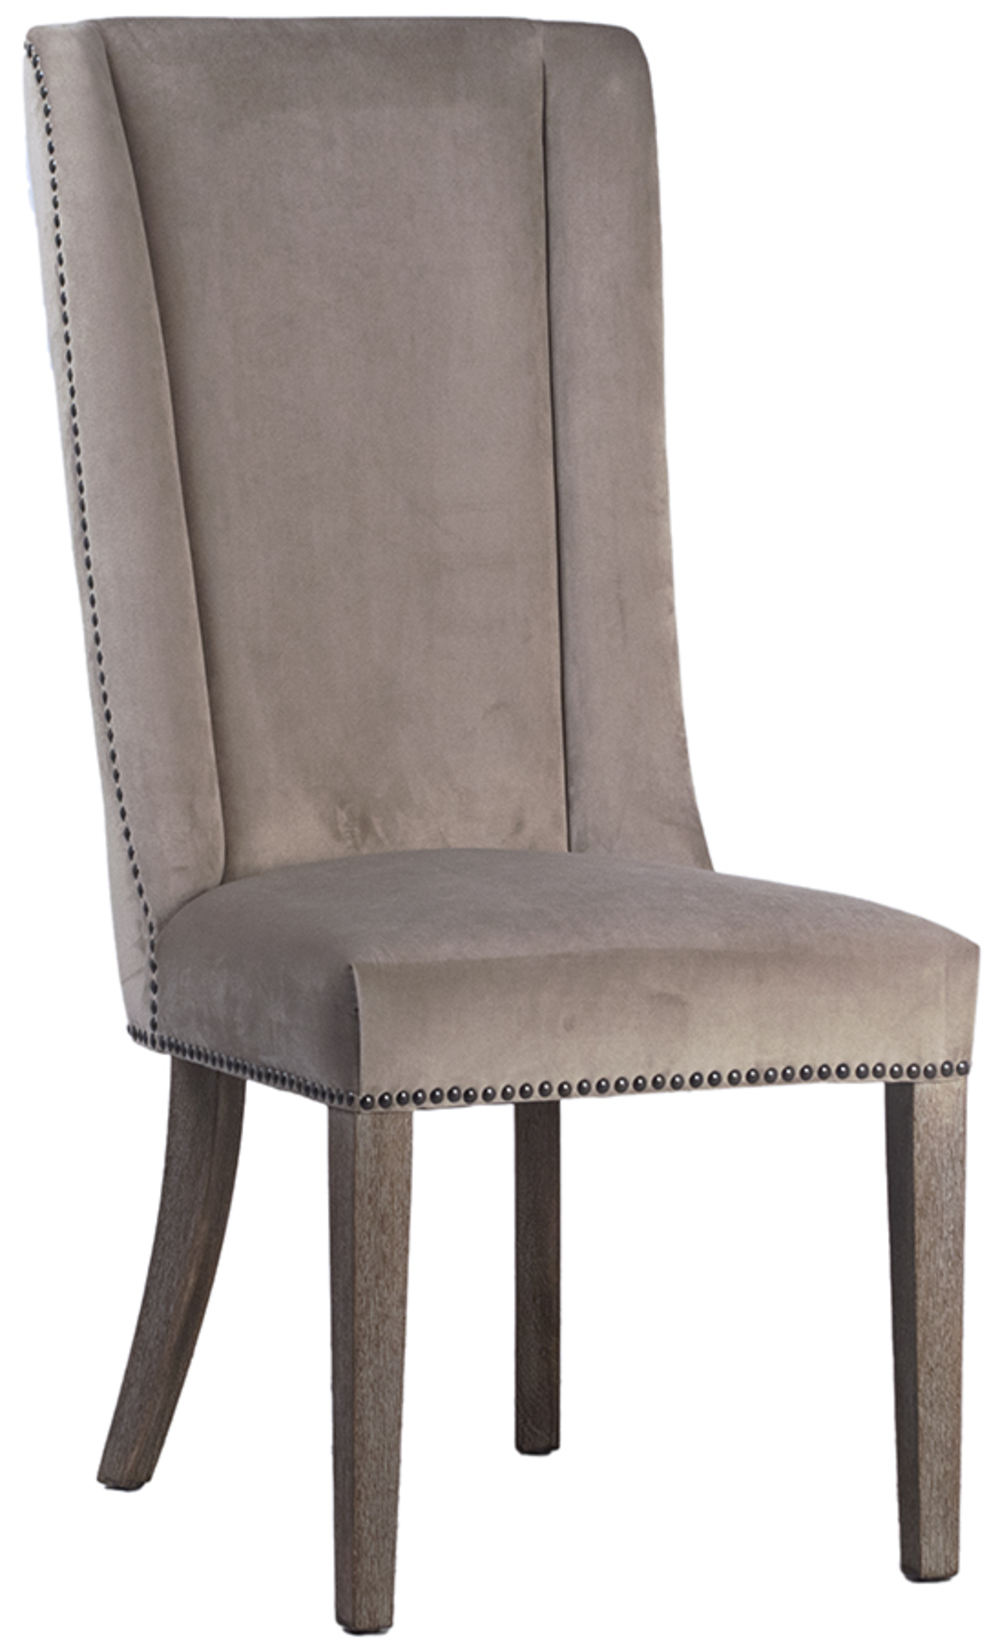 Dovetail Furniture - Atwater Chair